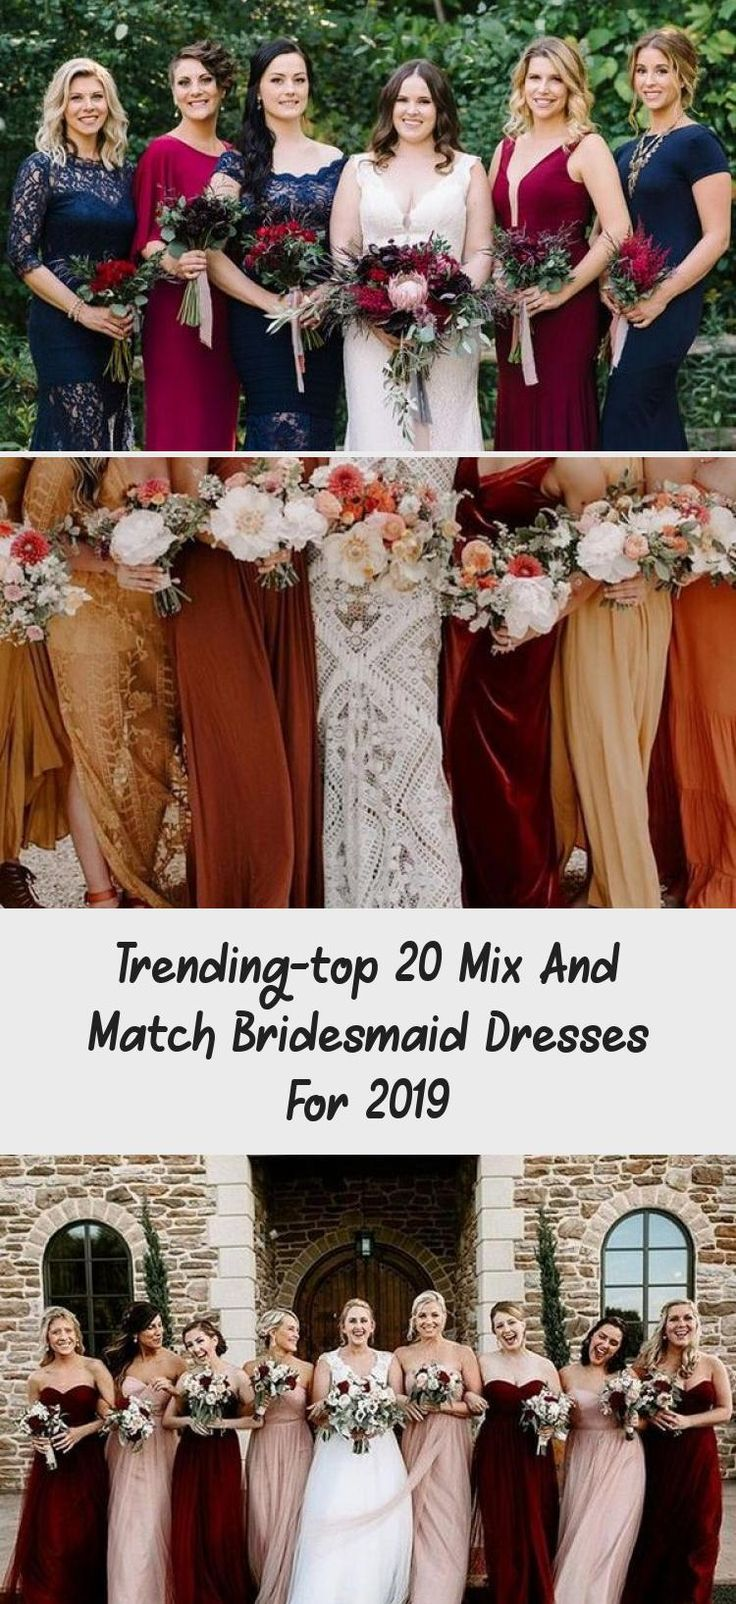 trending mix and match bridesmaid dresses for fall weddings #OffTheShoulderBridesmaidDresses #BridesmaidDressesLong #AfricanBridesmaidDresses #VelvetBridesmaidDresses #BridesmaidDressesColors